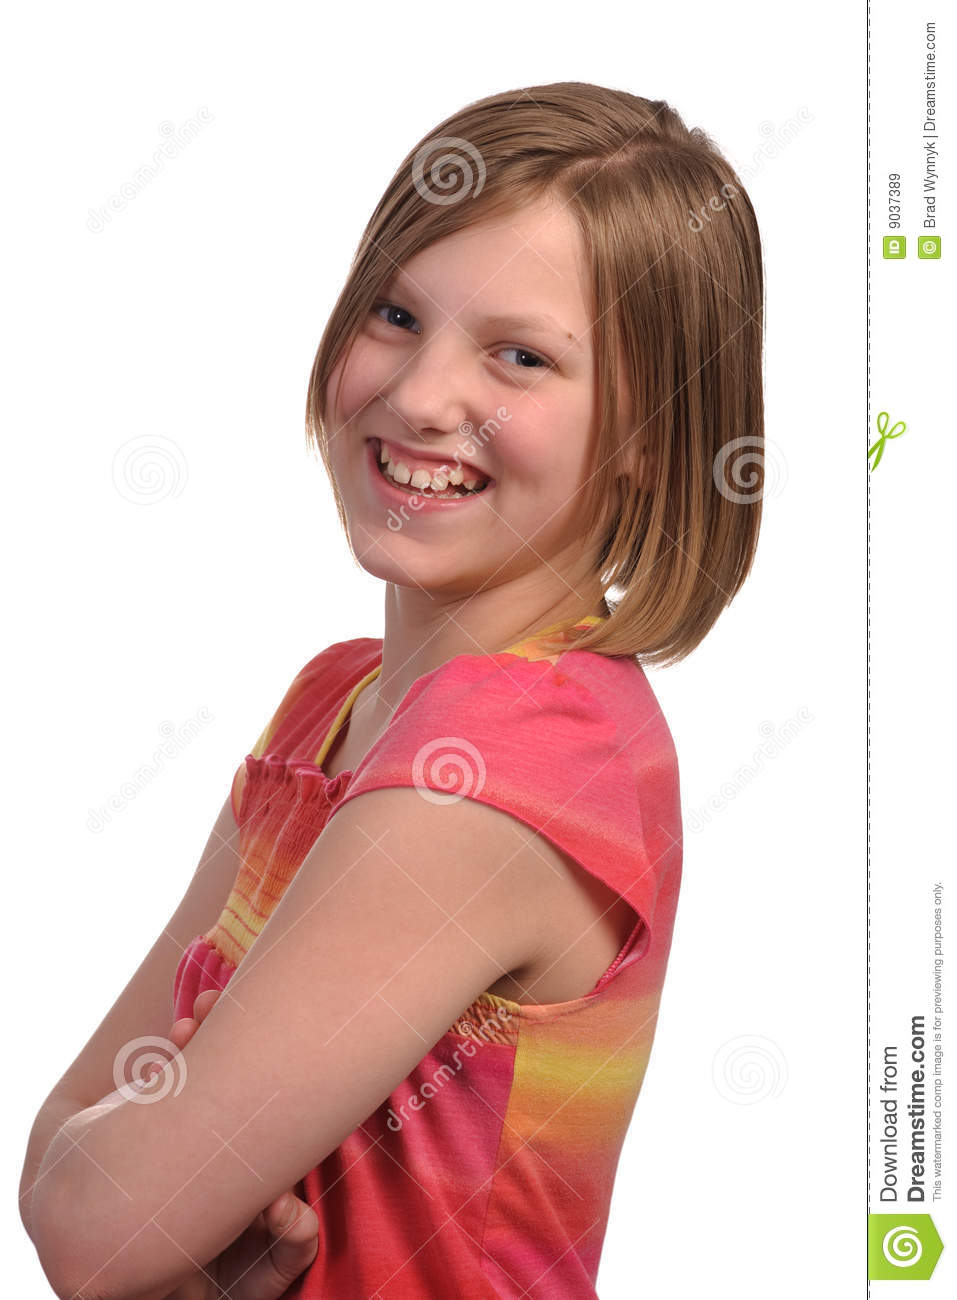 Young Pre Teen Girl Female Woman Torso Vertical Format: Young Girl Royalty Free Stock Images